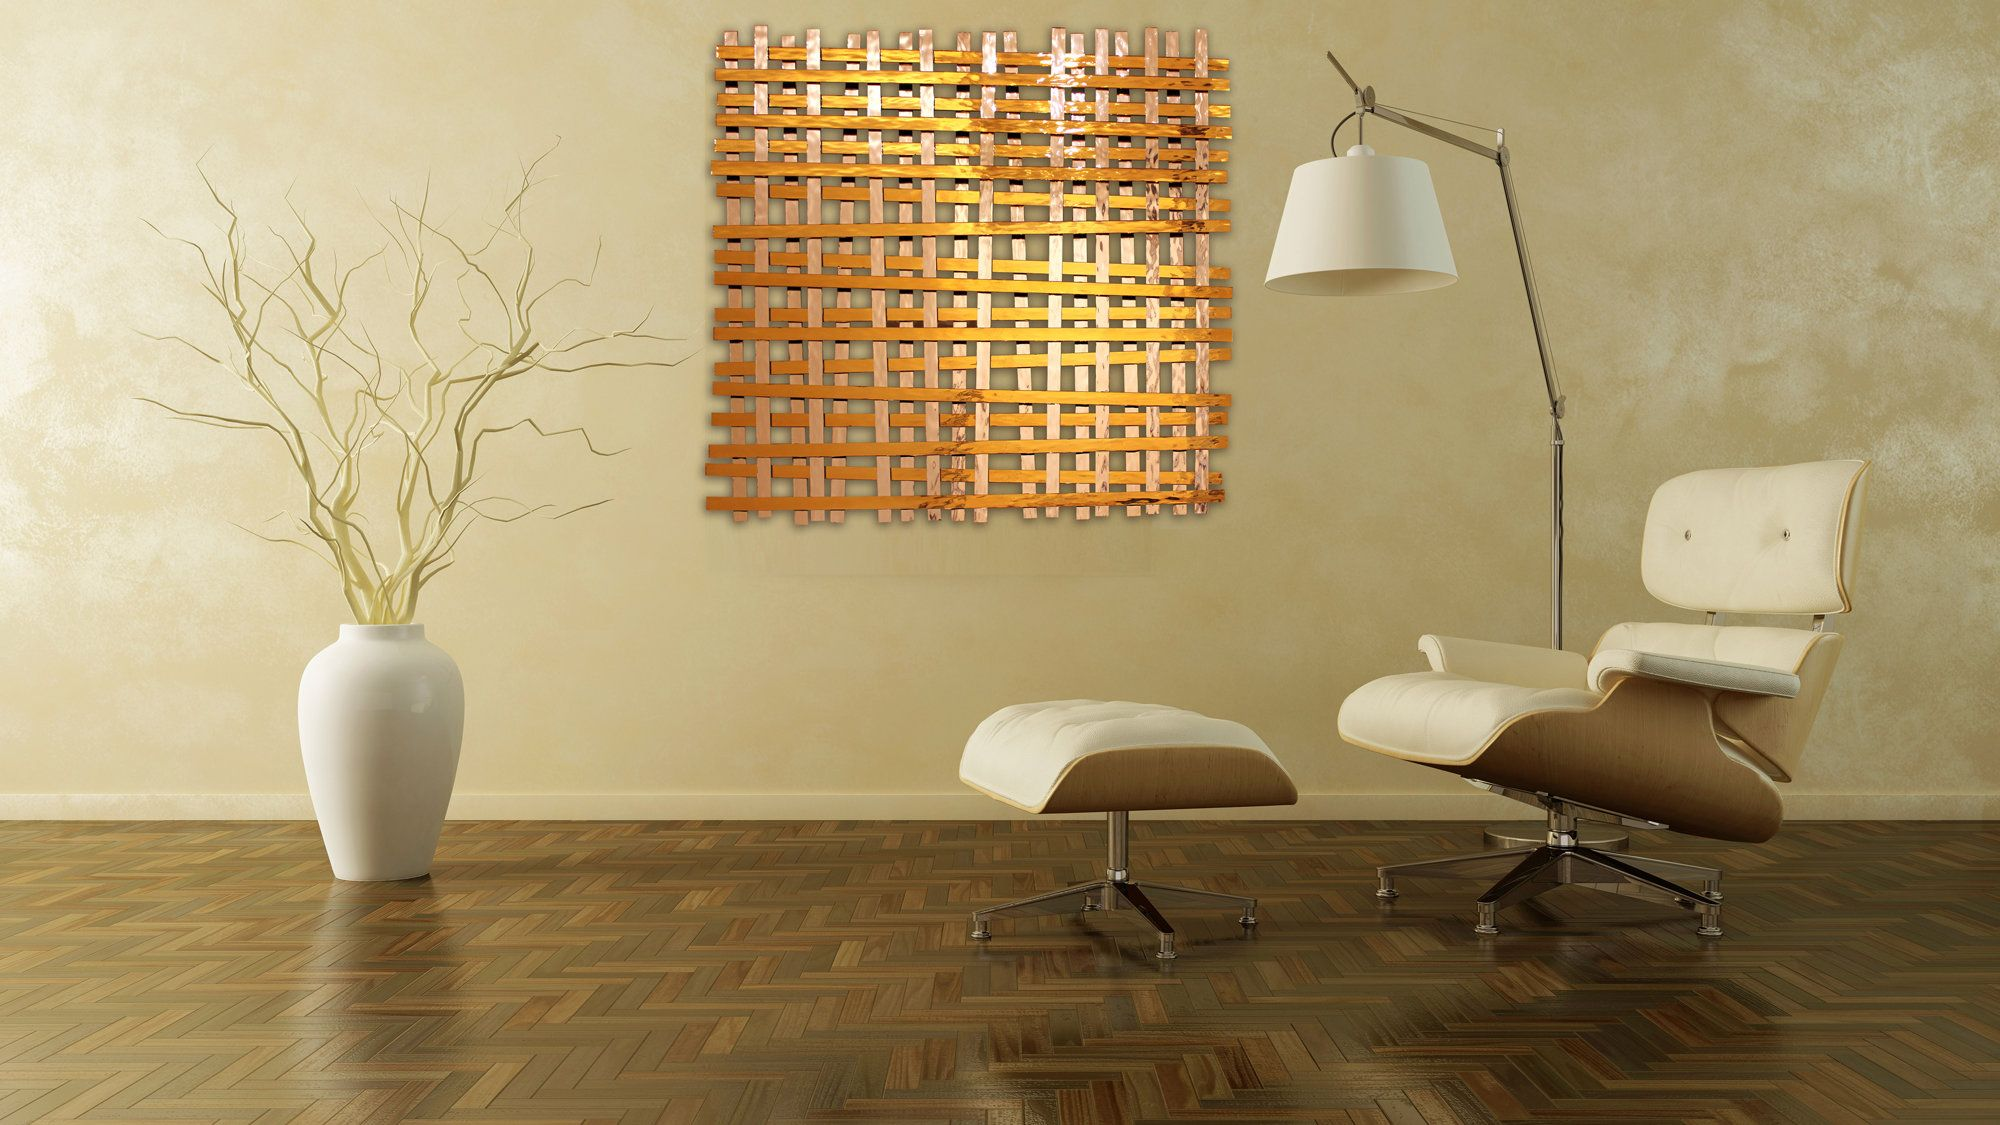 Stunning Decorative Wall Sculptures Pictures Inspiration - The Wall ...